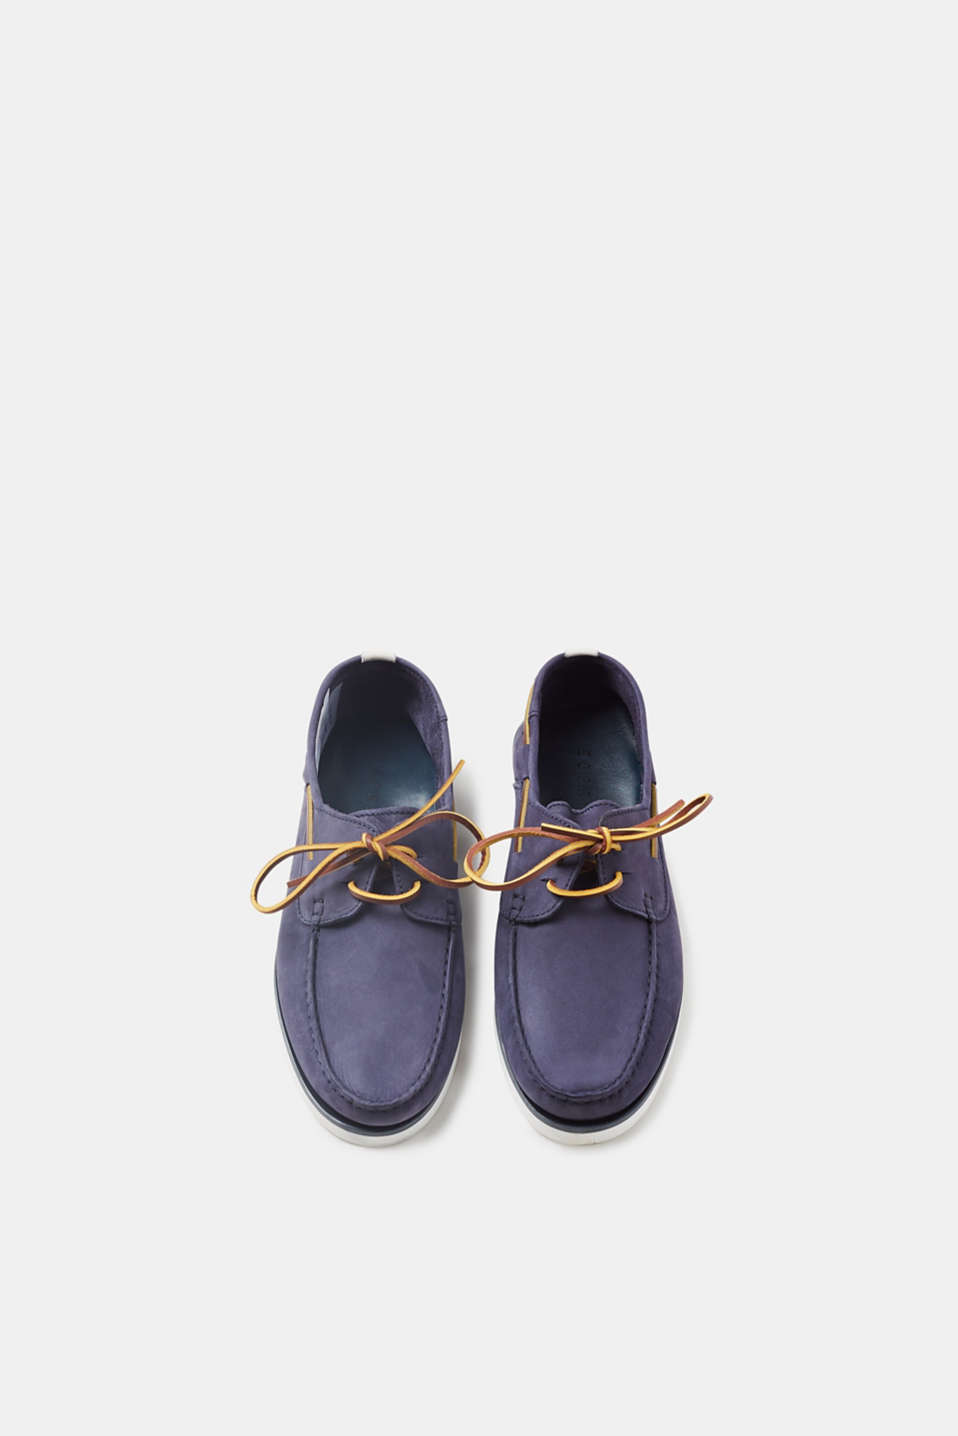 Boat shoe with a pale sole, in suede